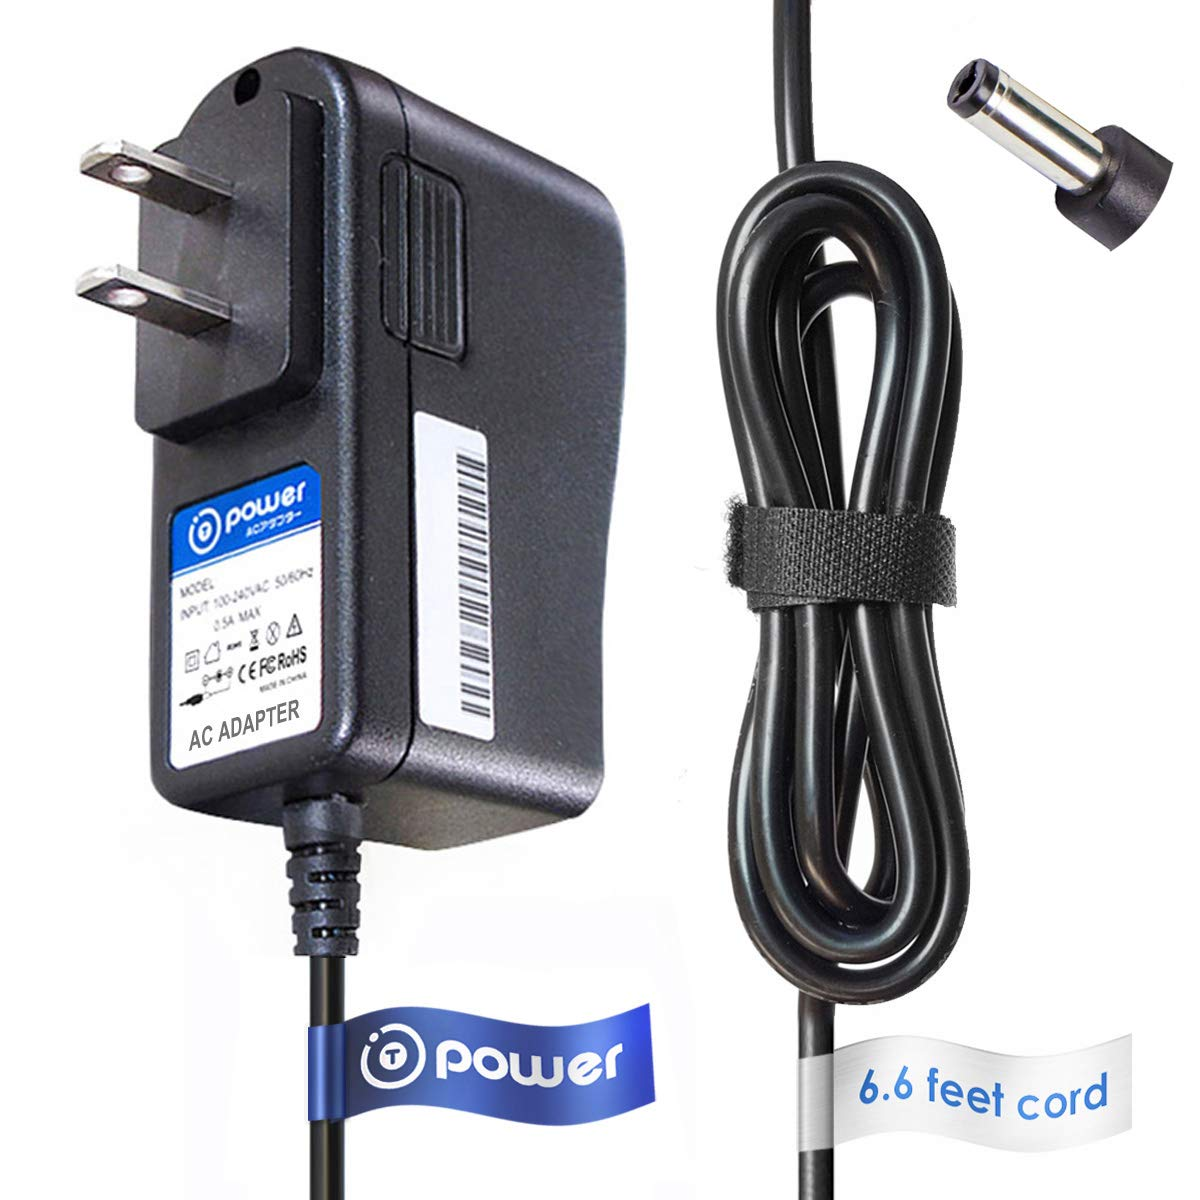 T-Power 9vdc (6.6ft Long Cable) AC Adapter Charger for Casio Piano Keyboard AD-5 AD-5MU AD5MU AD-5MLE AD-5GL AD5GL TC1#1035 (CTK, CA, MA, HT, LK, CT, Series) power supply cord charger